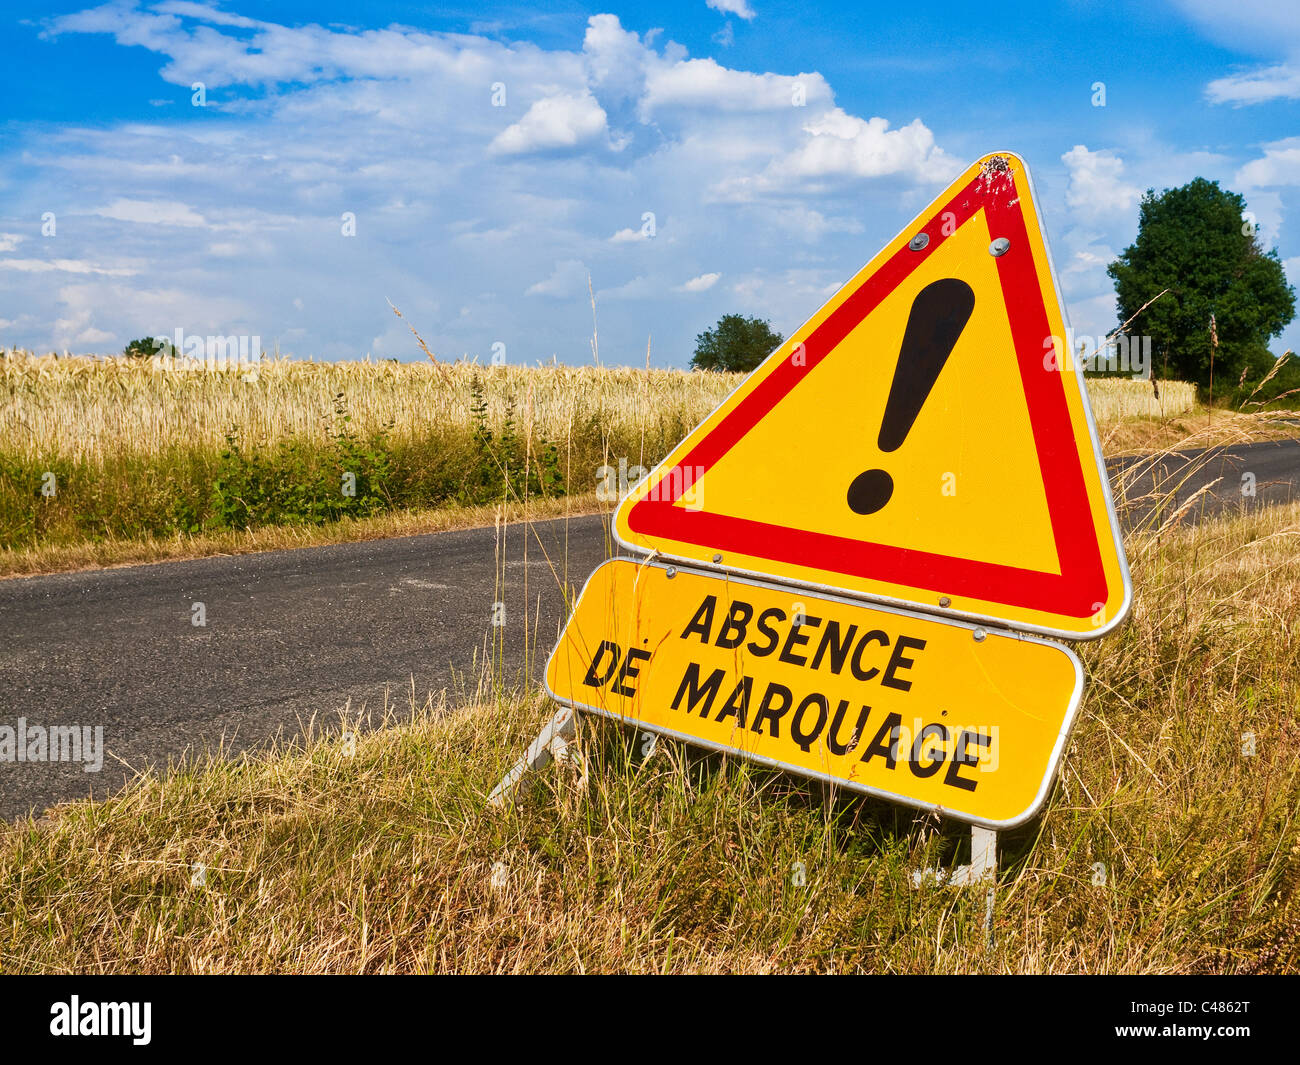 French road works 'Absence de Marquage' / No Markings - safety warning triangle on road verge - France. - Stock Image